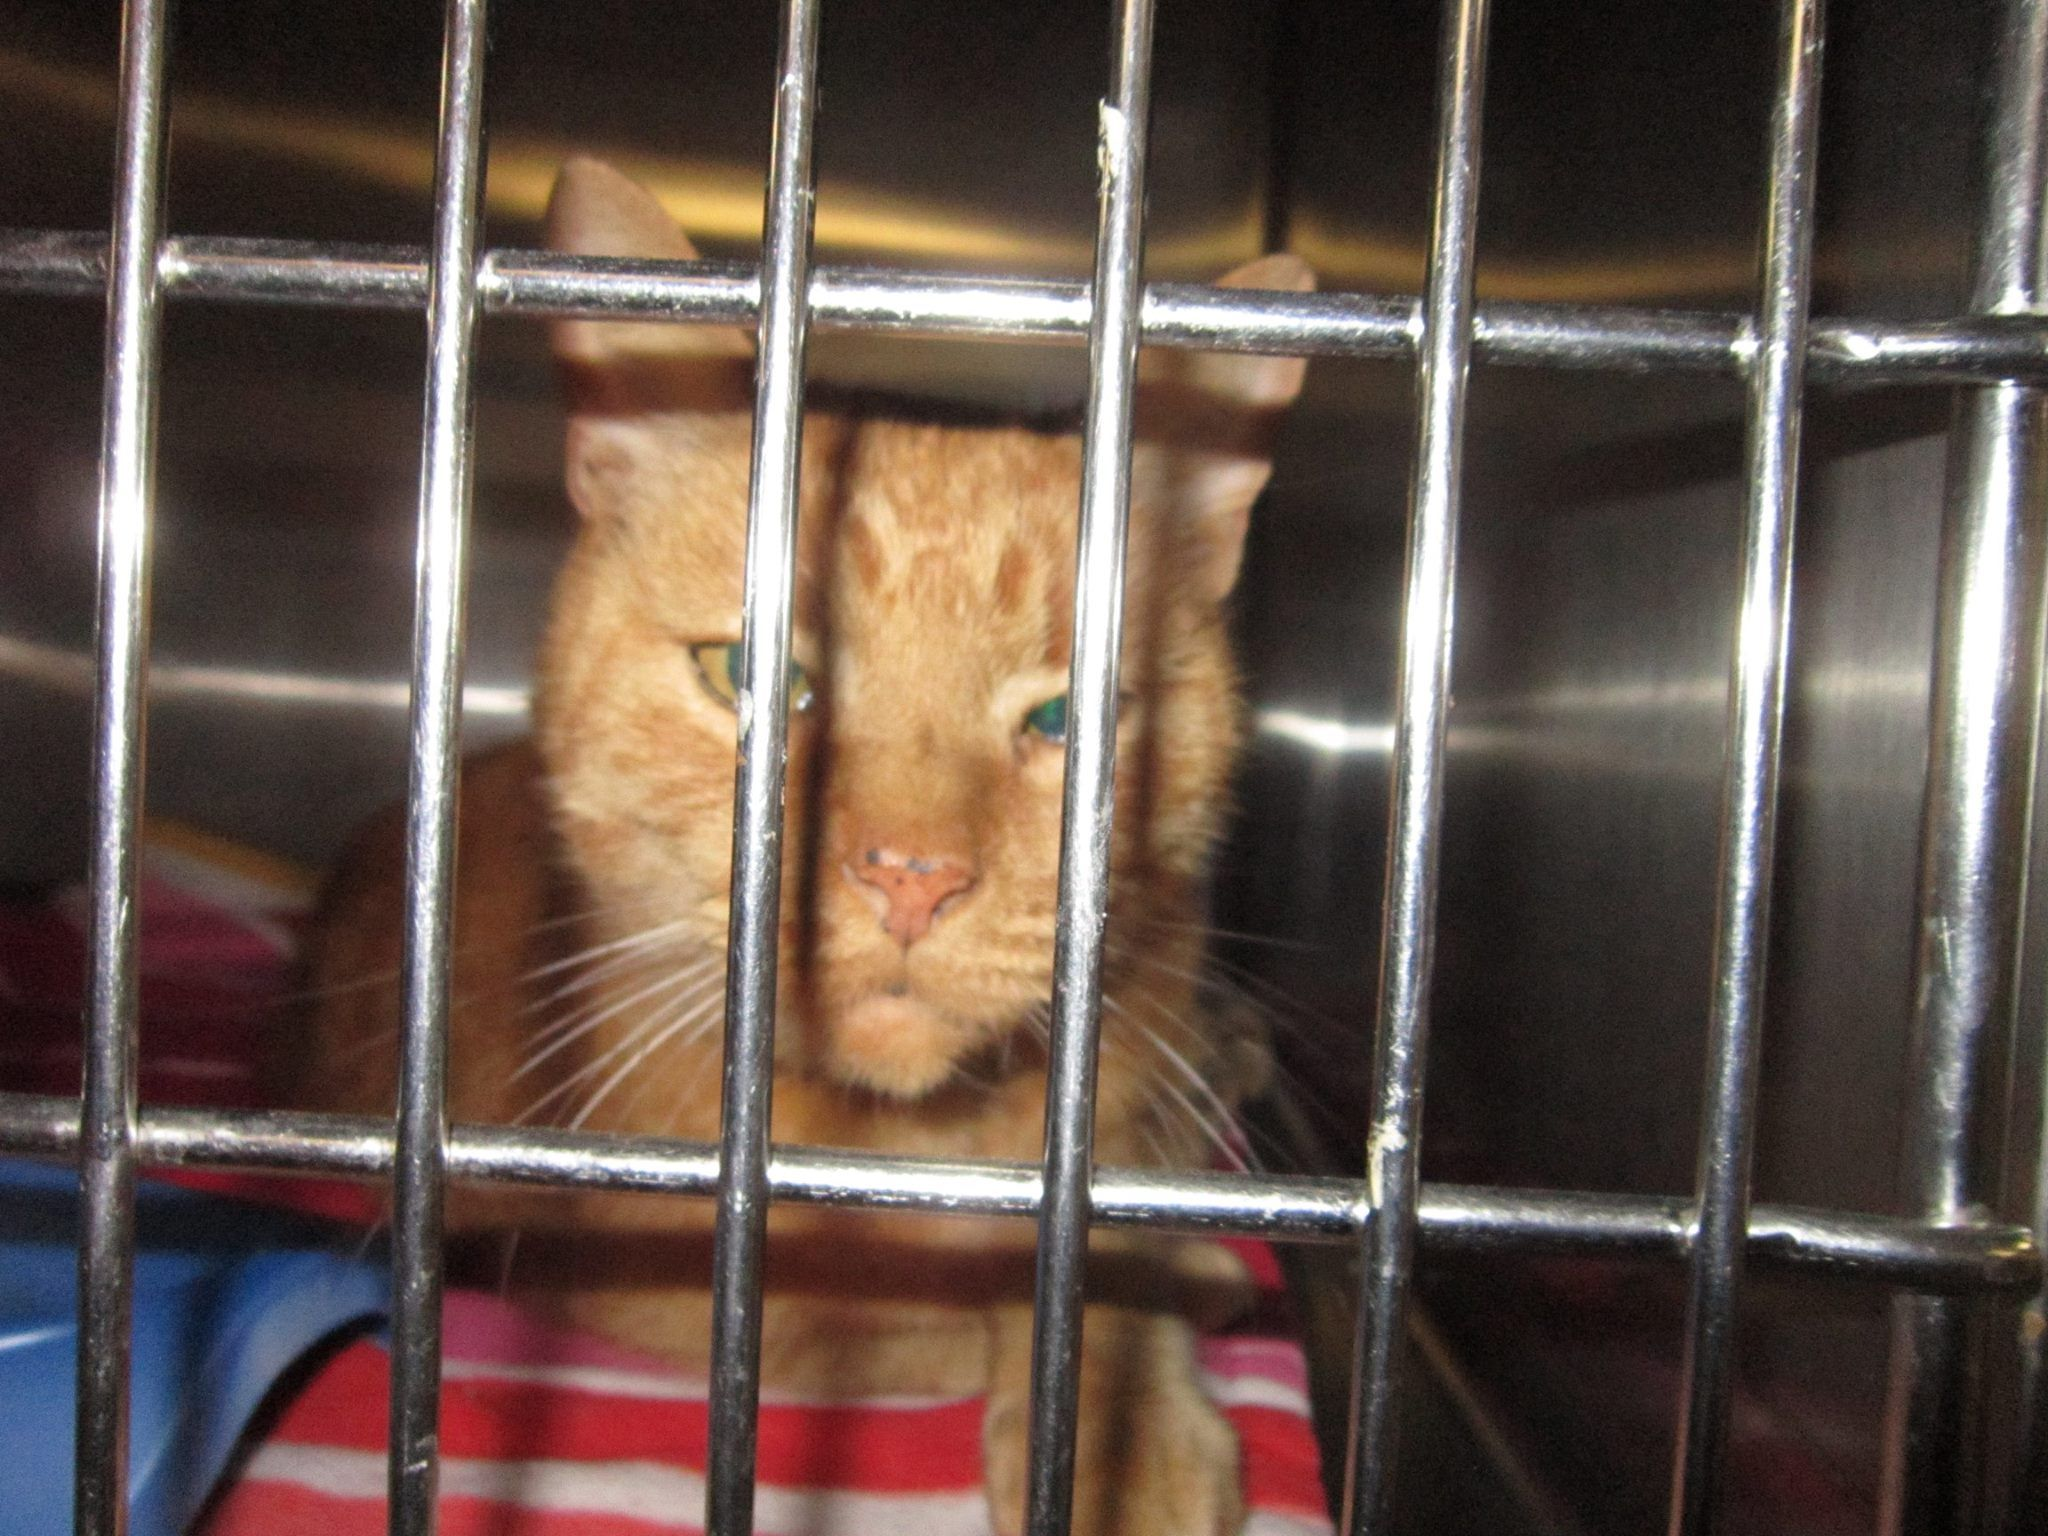 Middletown Animal Control added 2 new photos. October 29 at 3:58pm ·  This cat was found on Ridgewood Rd. in Middletown, CT after supposedly being struck by a car. His back is sore but he is doing ok. He was wearing a collar but has no tags or microchip. Please SHARE!!! Please call if you know who he is. 860-638-4030